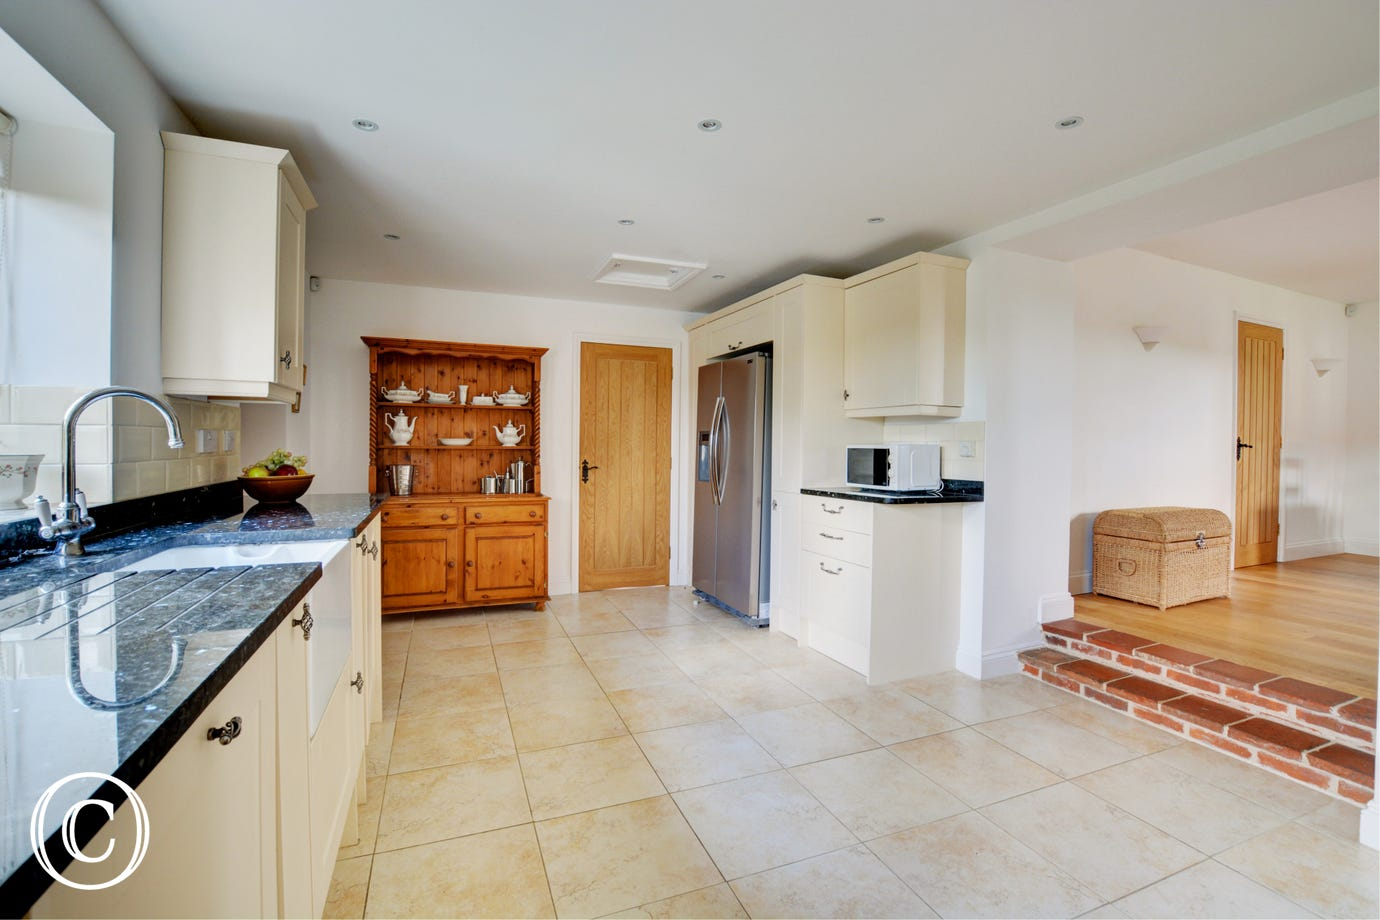 Fitted and equipped kitchen with step up to dining area